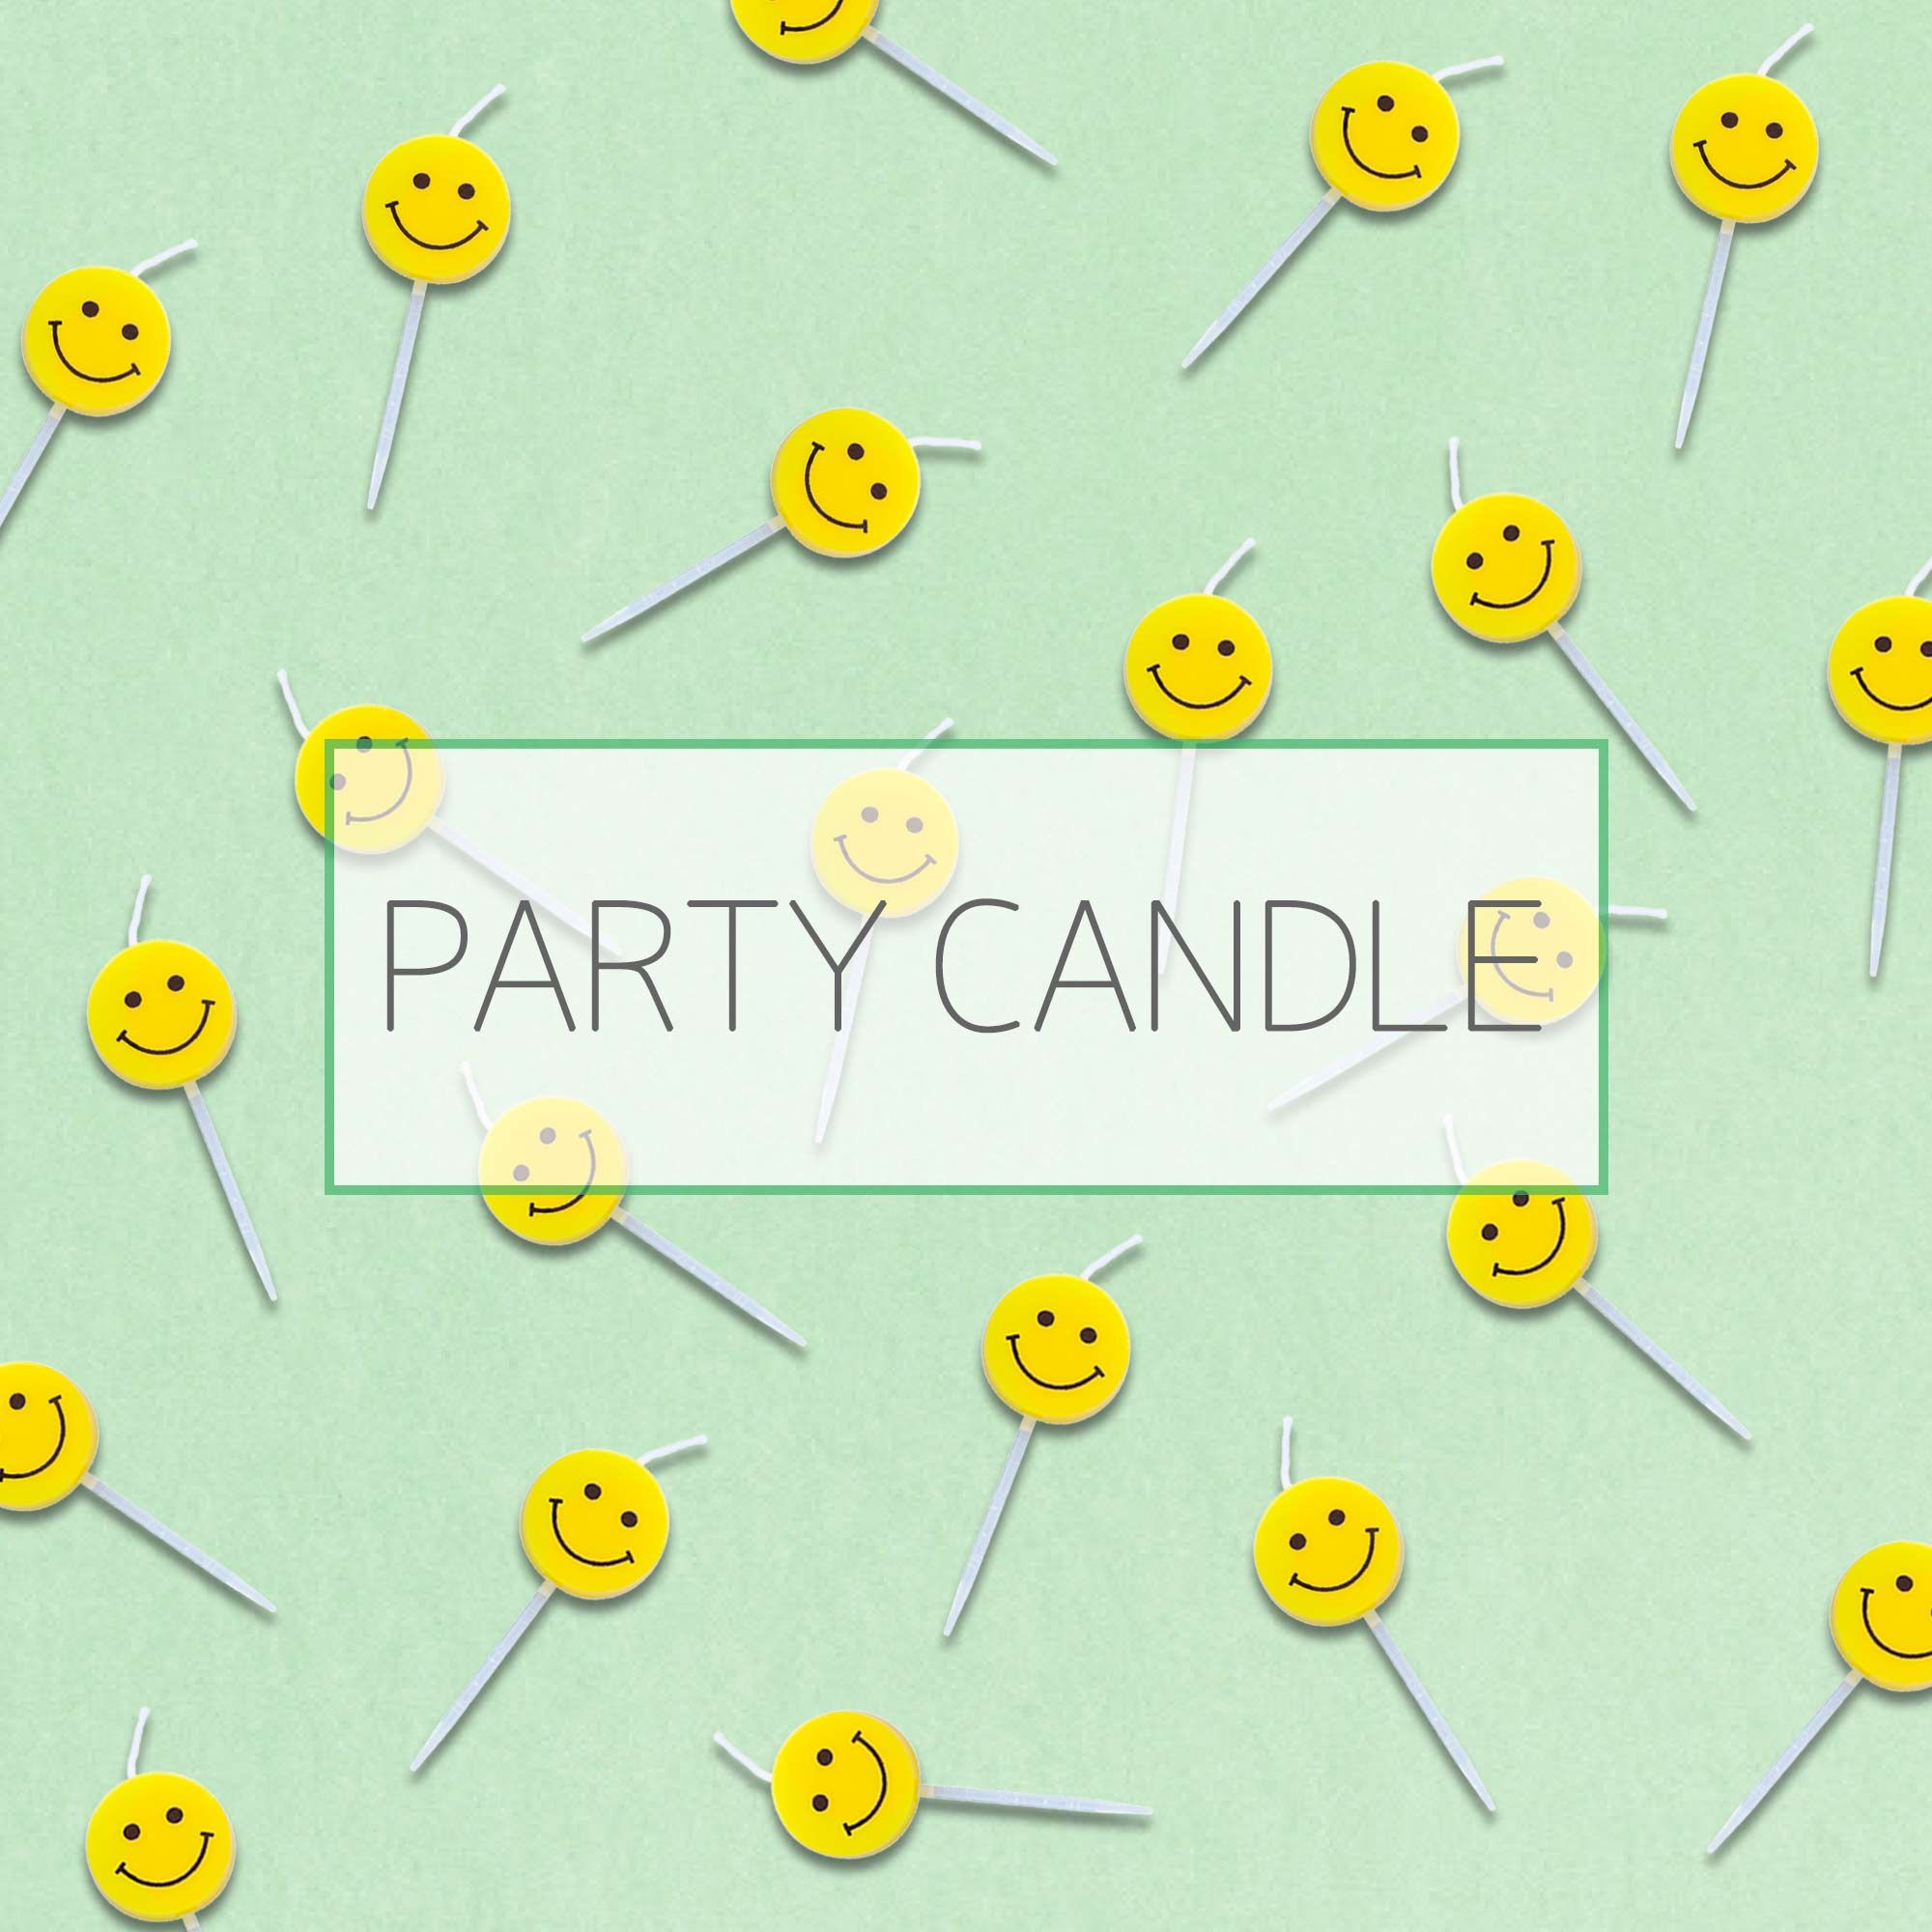 Party Candle - Stylish cake candle for party and birthday.